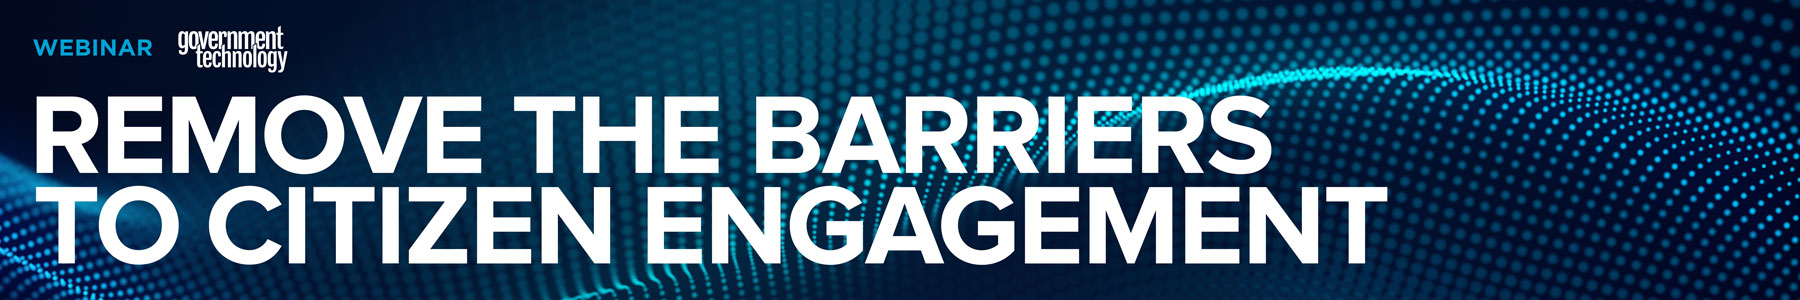 Remove the Barriers to Citizen Engagement